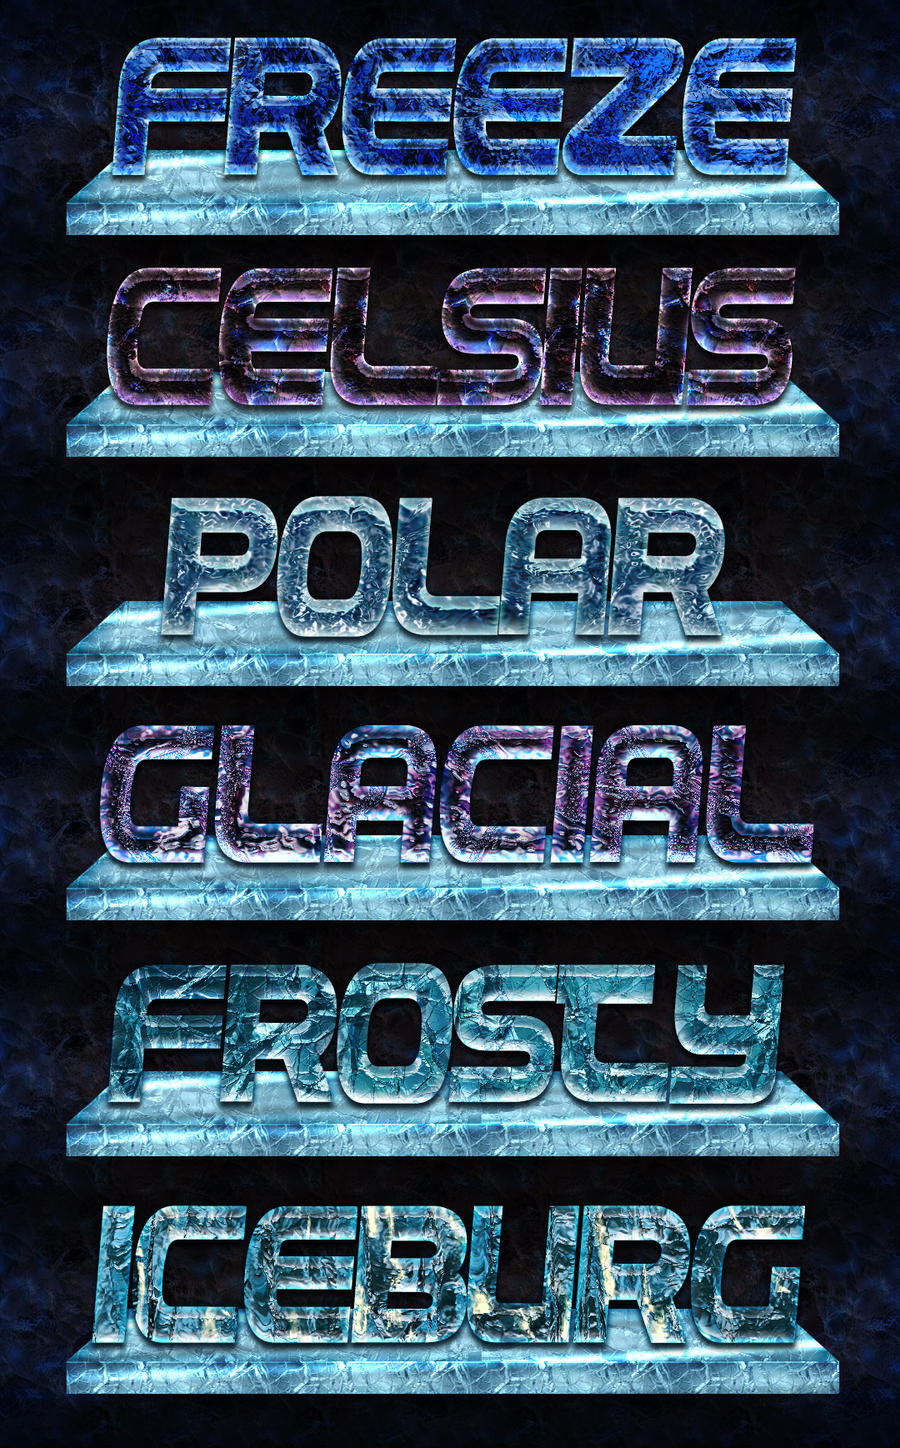 Icetext explore icetext on deviantart schrodingers pat 25 4 ice crystals photoshop styles by xstortionist baditri Images